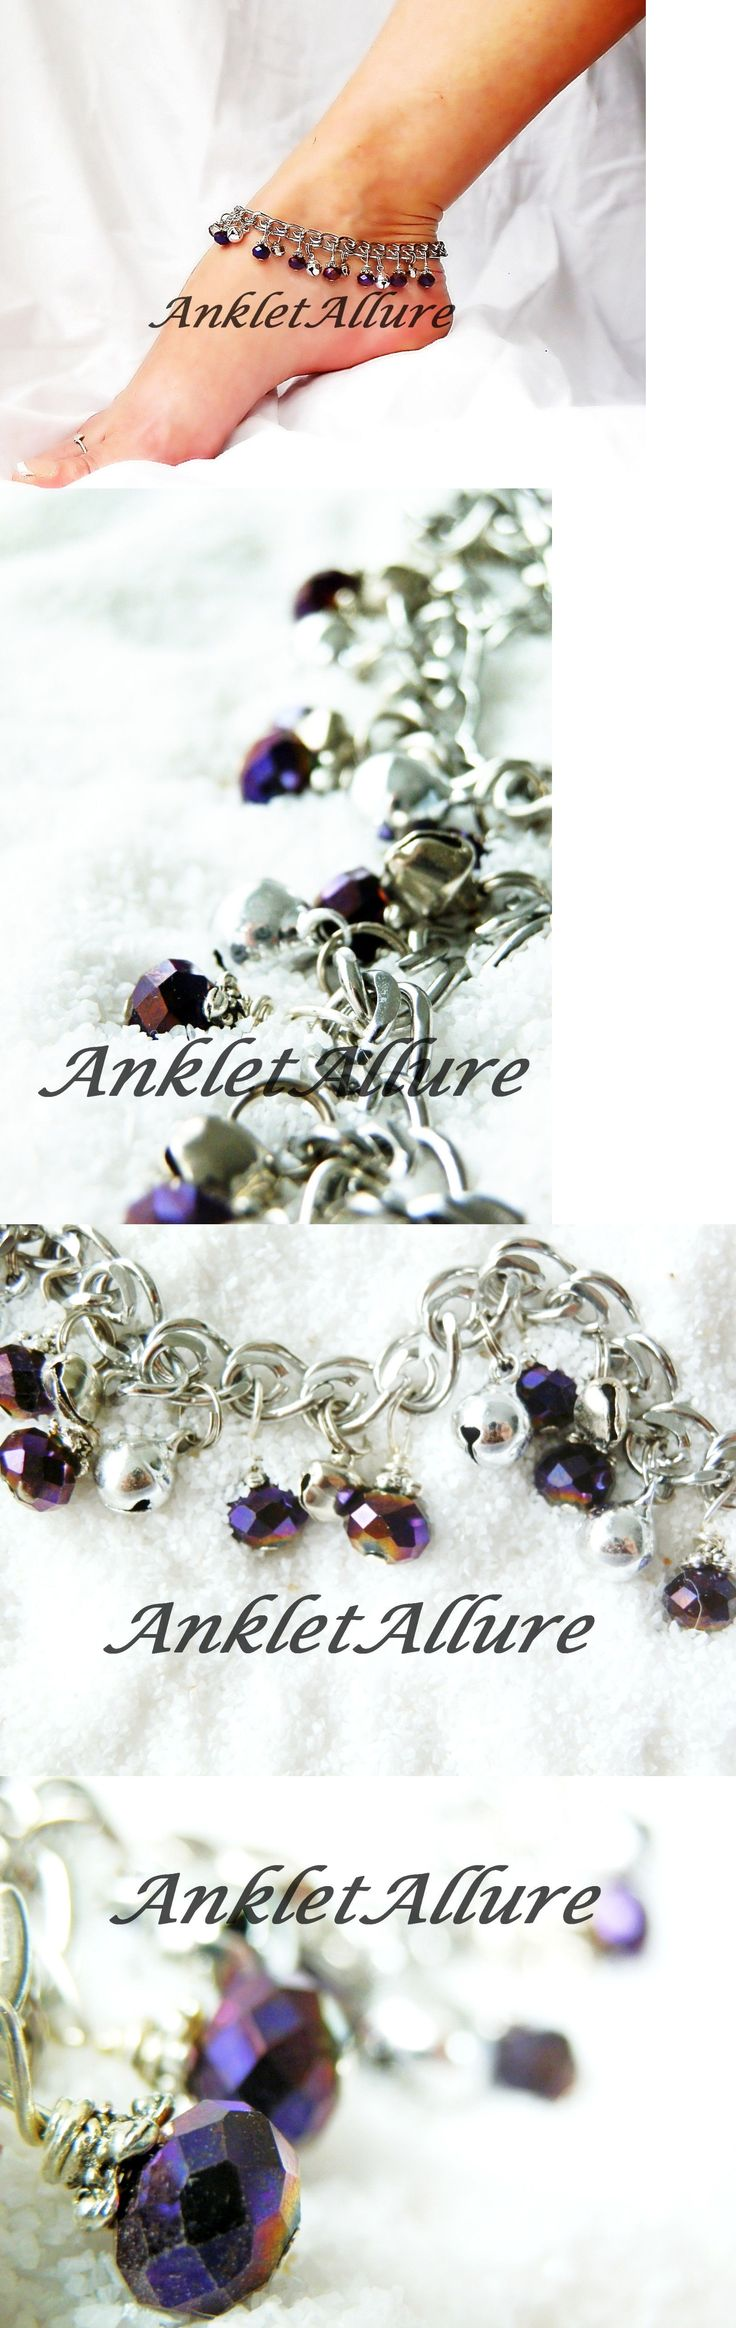 Anklets 110634: Belly Dance Anklet Jingle Bells Anklet Purple Body Jewelry Foot Jewelry -> BUY IT NOW ONLY: $34.0 on eBay!